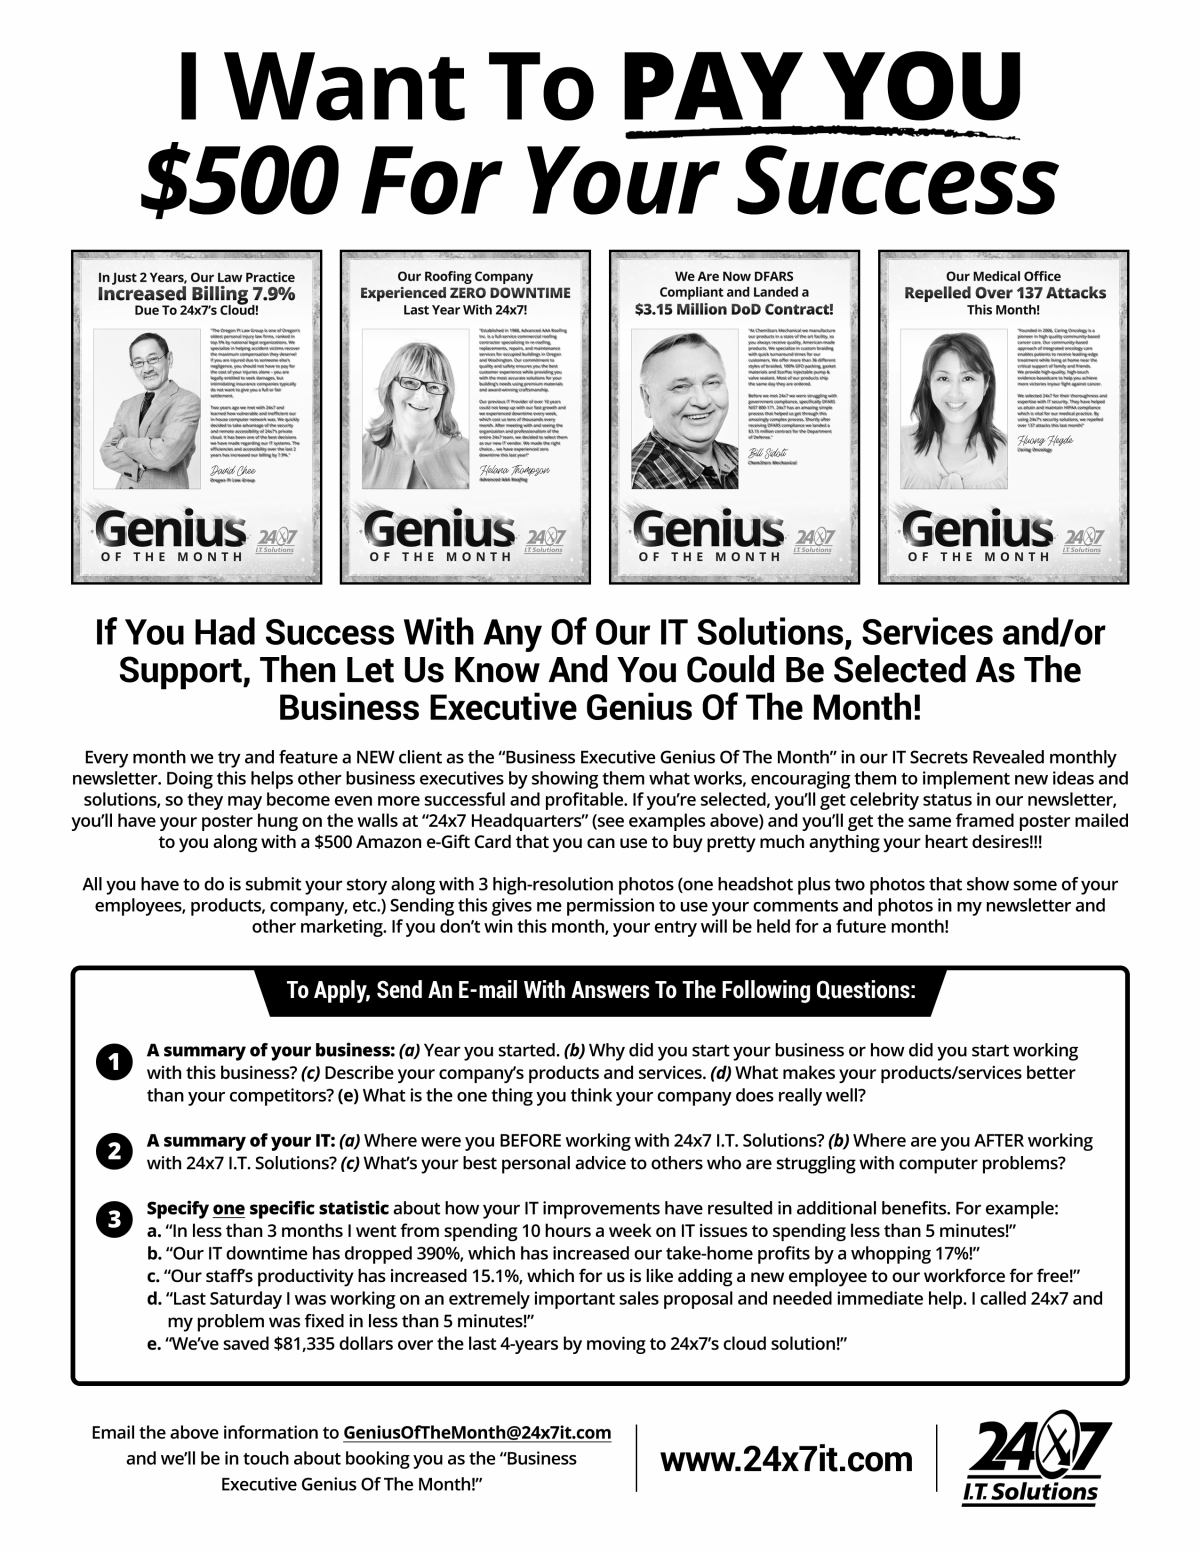 24x7it GENIUS Of The Month poster and flyer